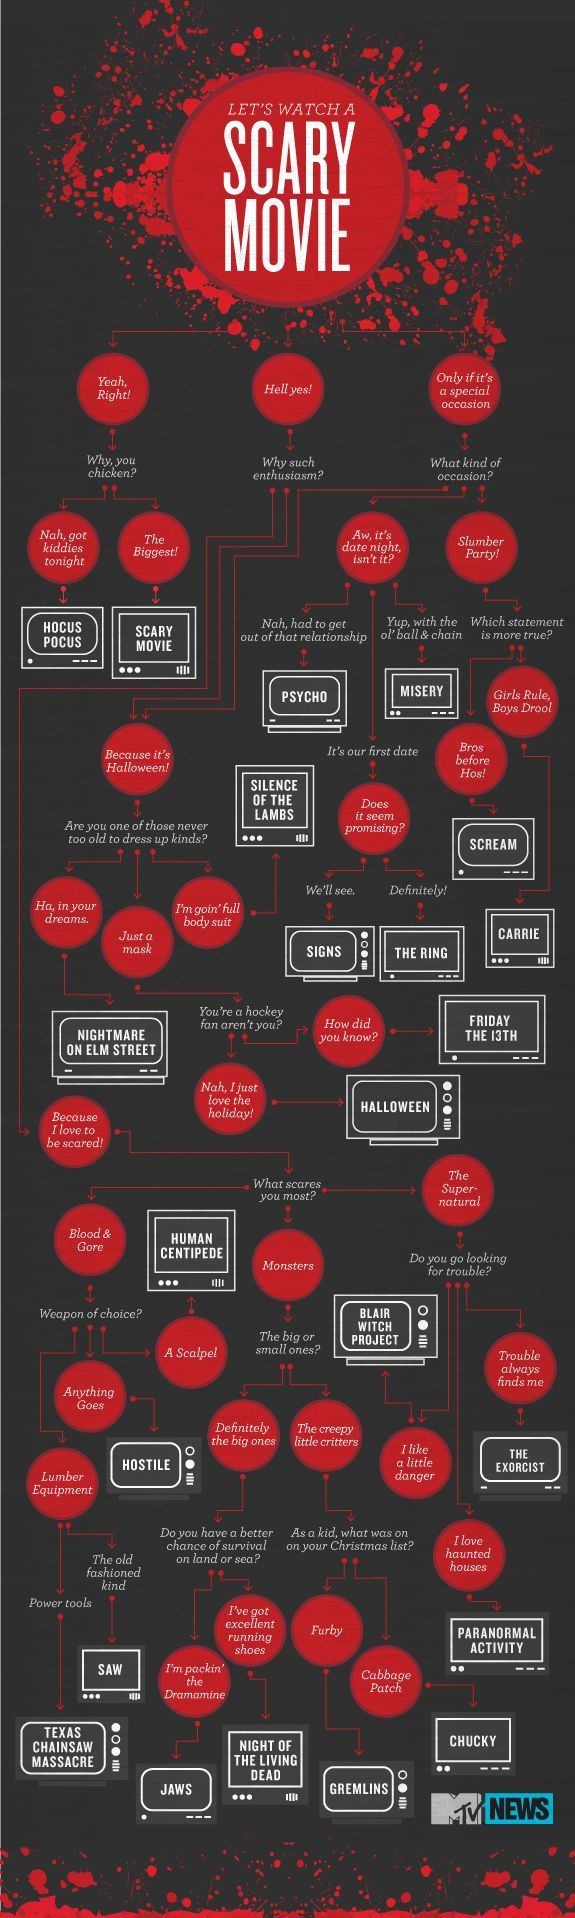 Our Horror Movie Infographic Helps You Pick What To Watch On Halloween